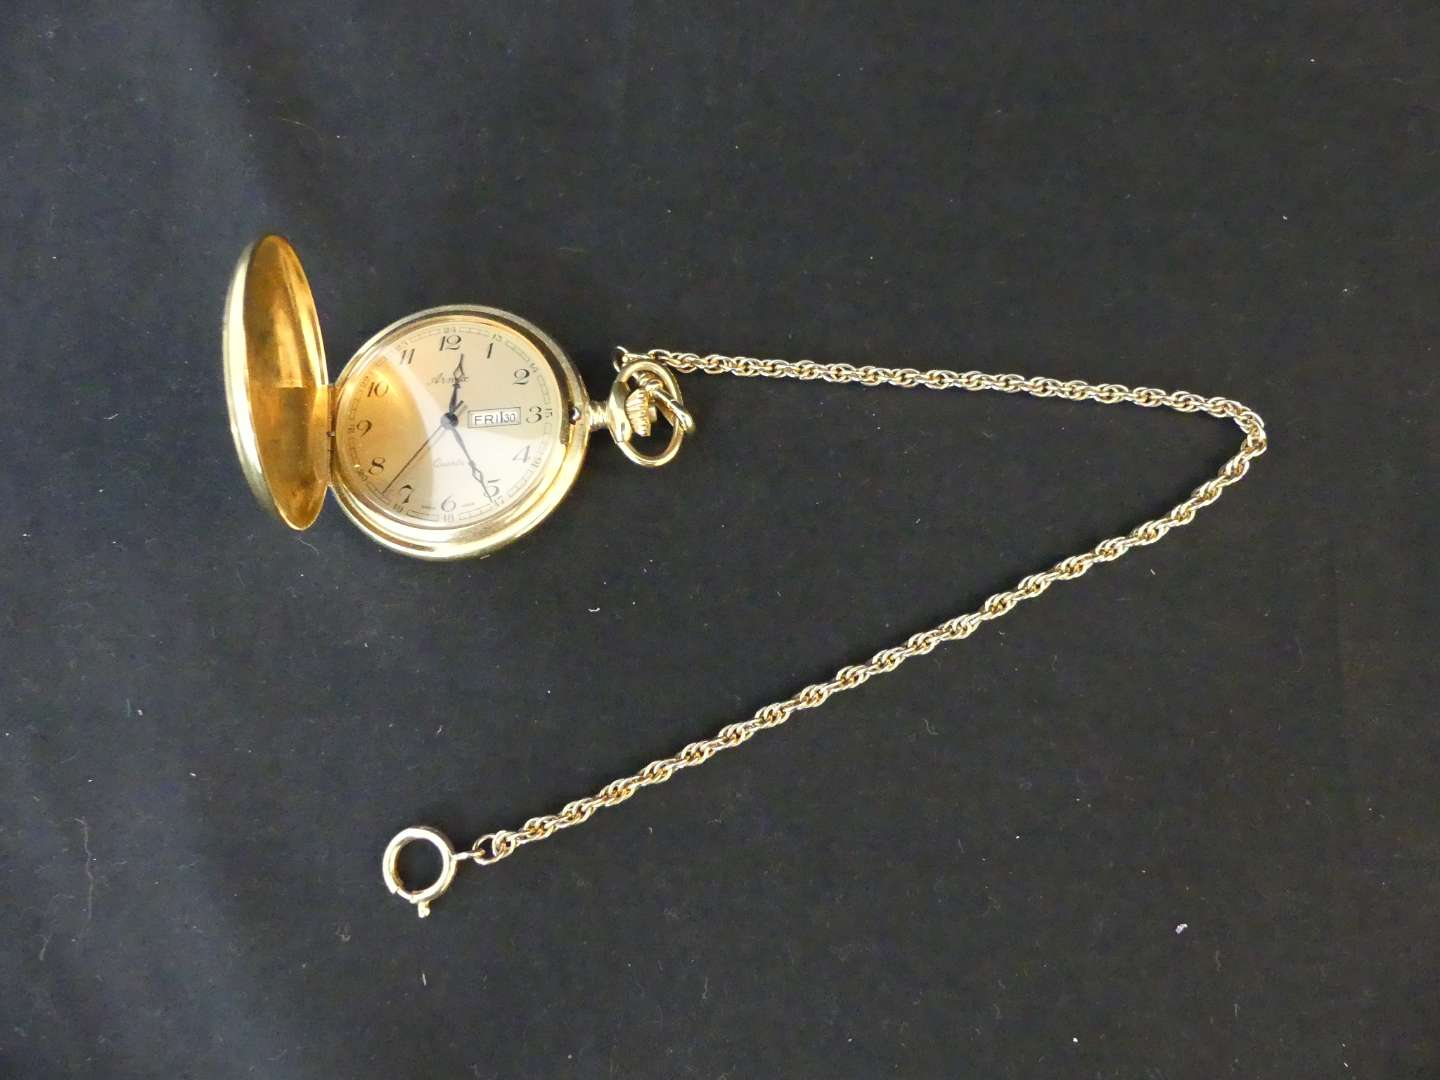 Lot #162 Arnex Swiss Quartz Beautifully Engraved and Detailed Pocket Watch